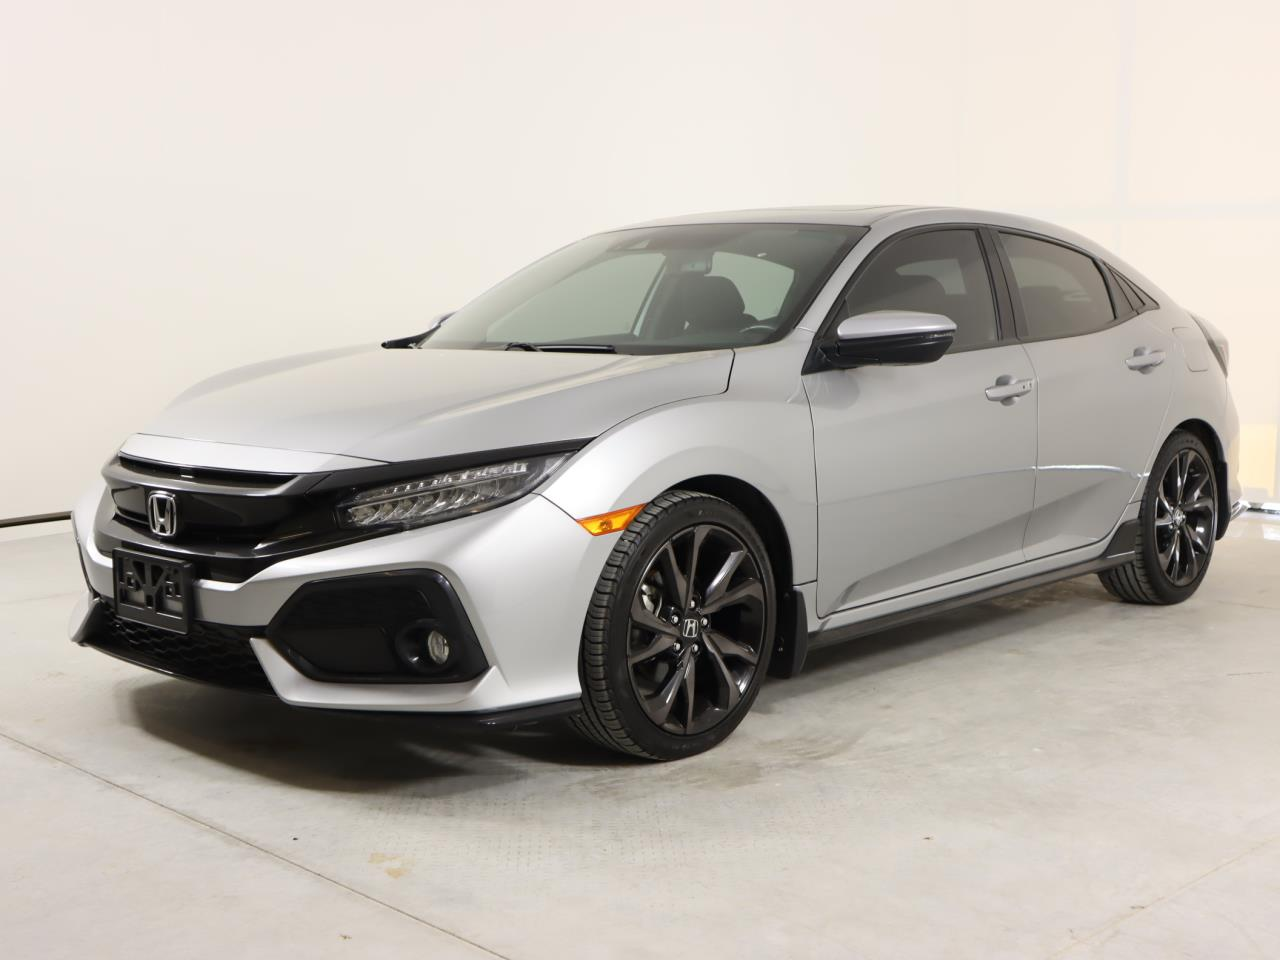 used vehicle - Sedan HONDA CIVIC HATCHBACK 2017